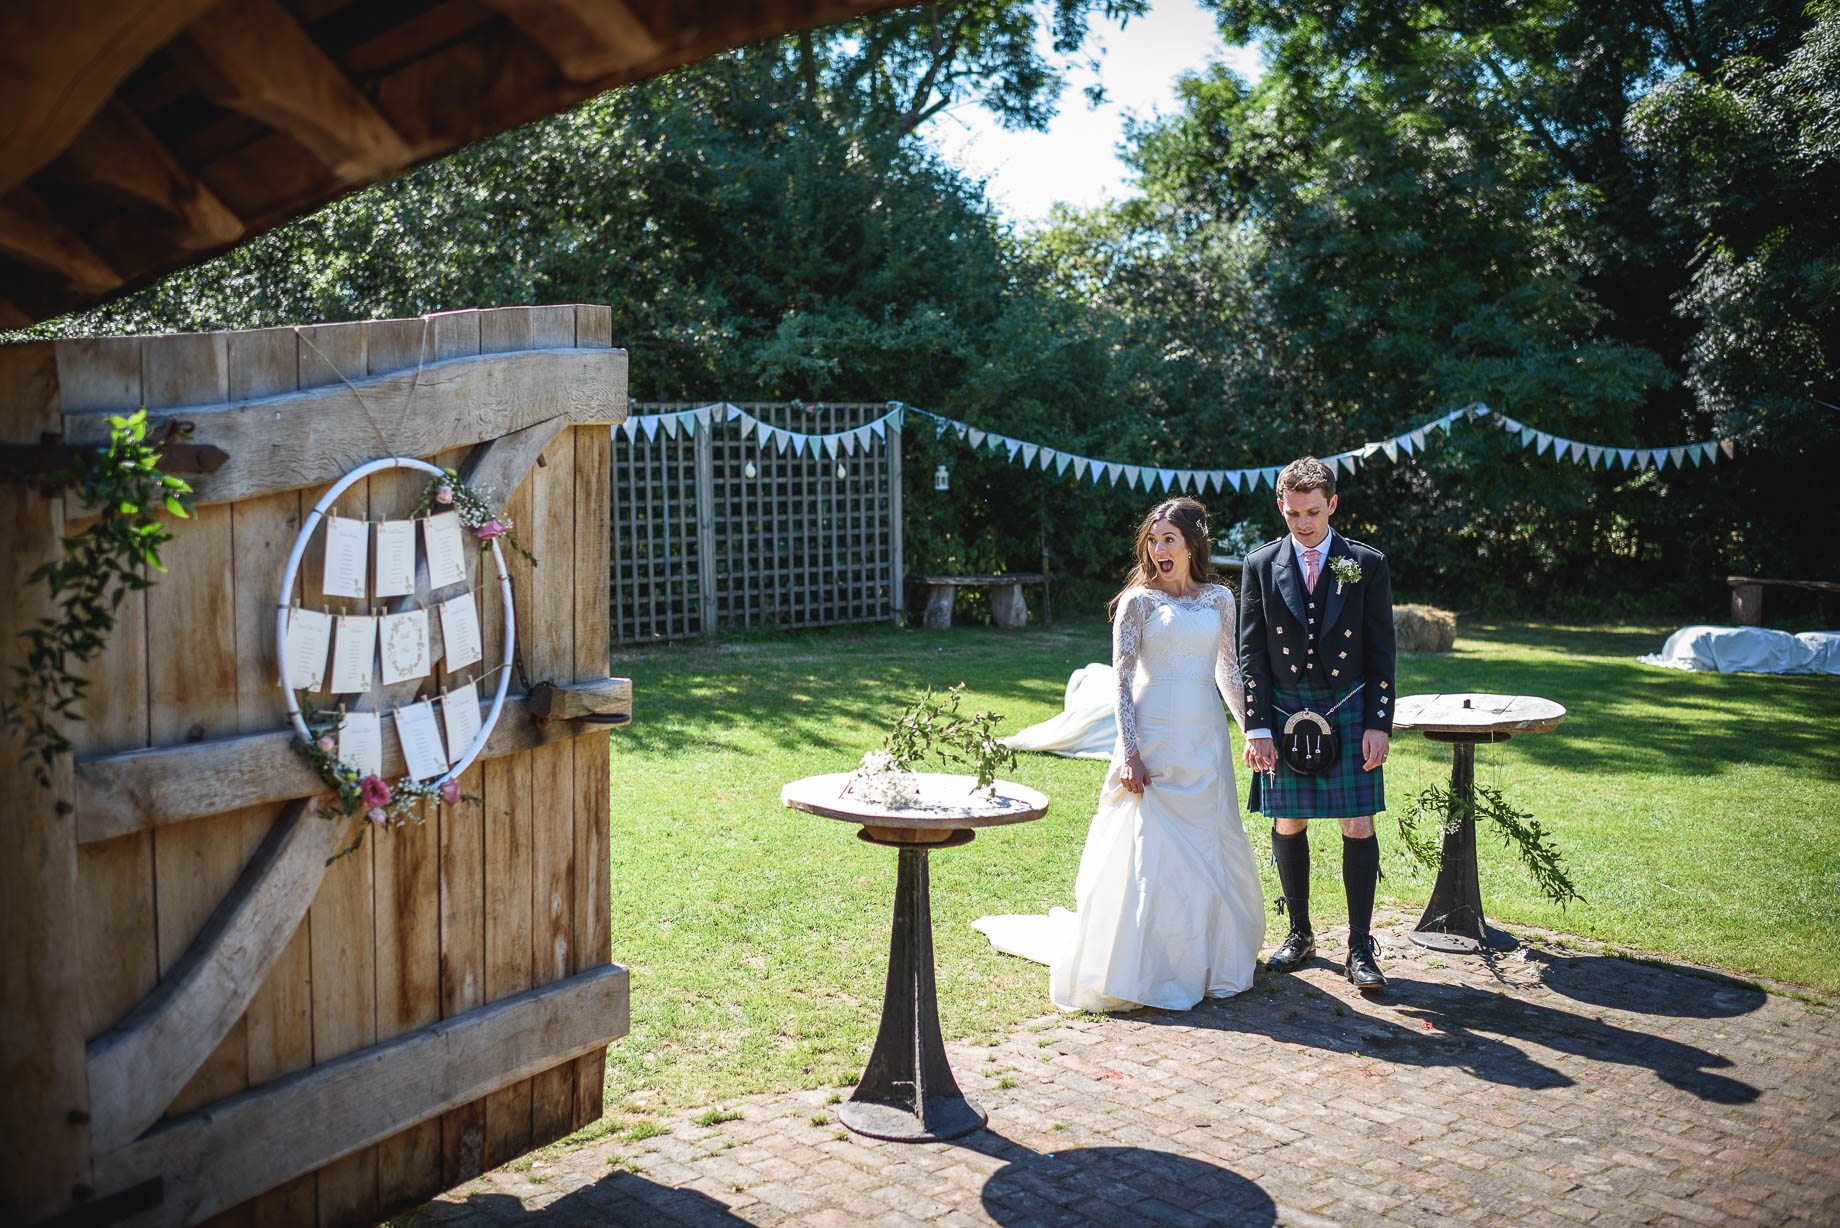 Gildings Barn wedding photography - Sarah and Steve (128 of 190)